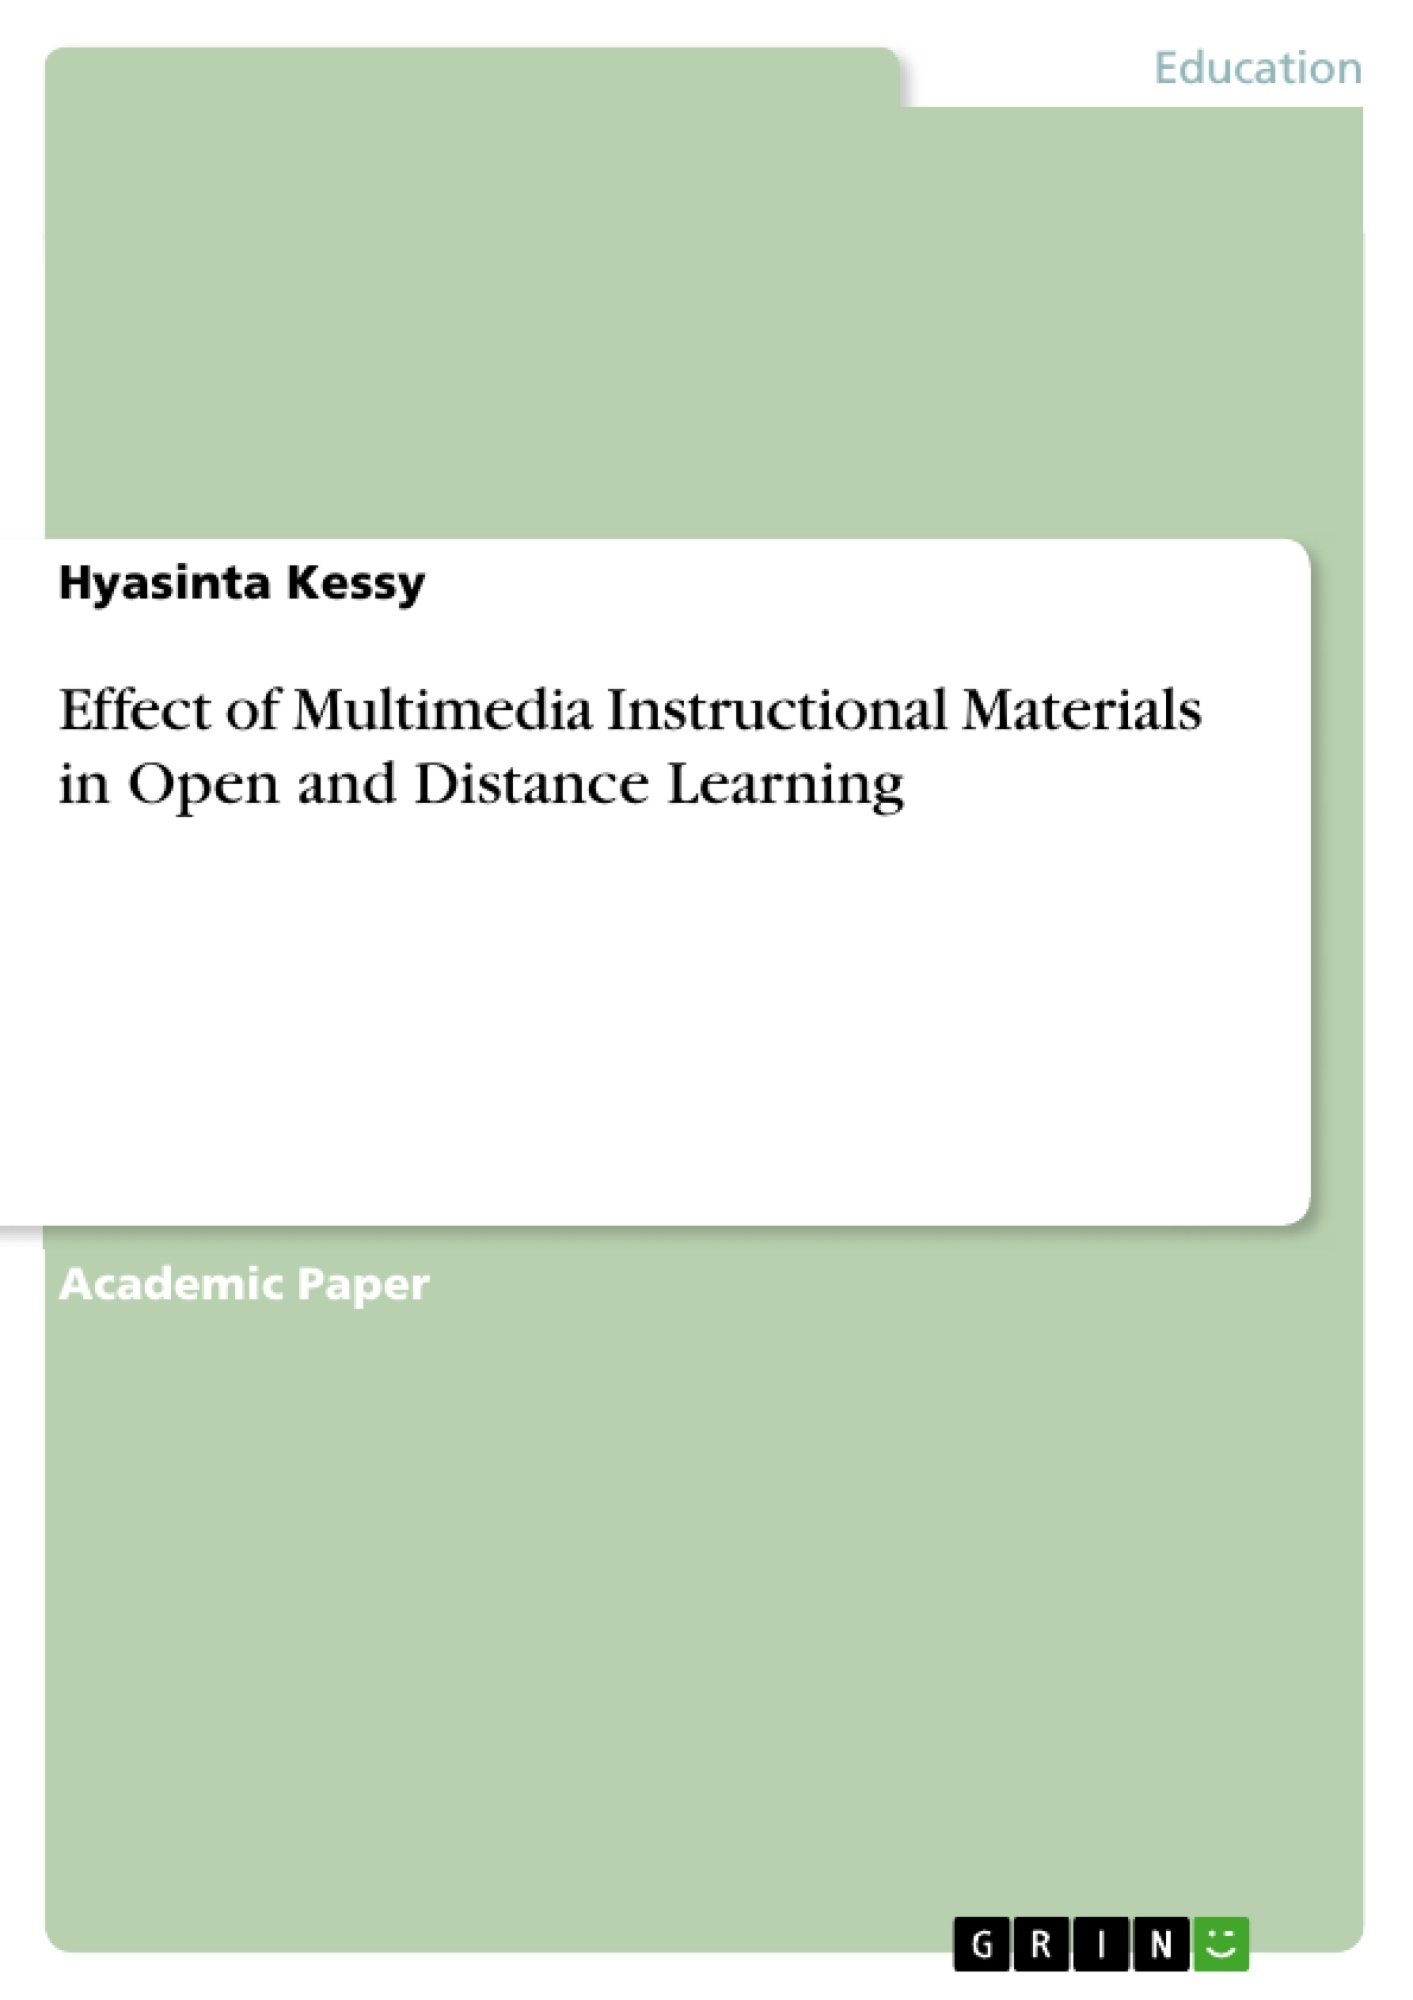 Title: Effect of Multimedia Instructional Materials in Open and Distance Learning